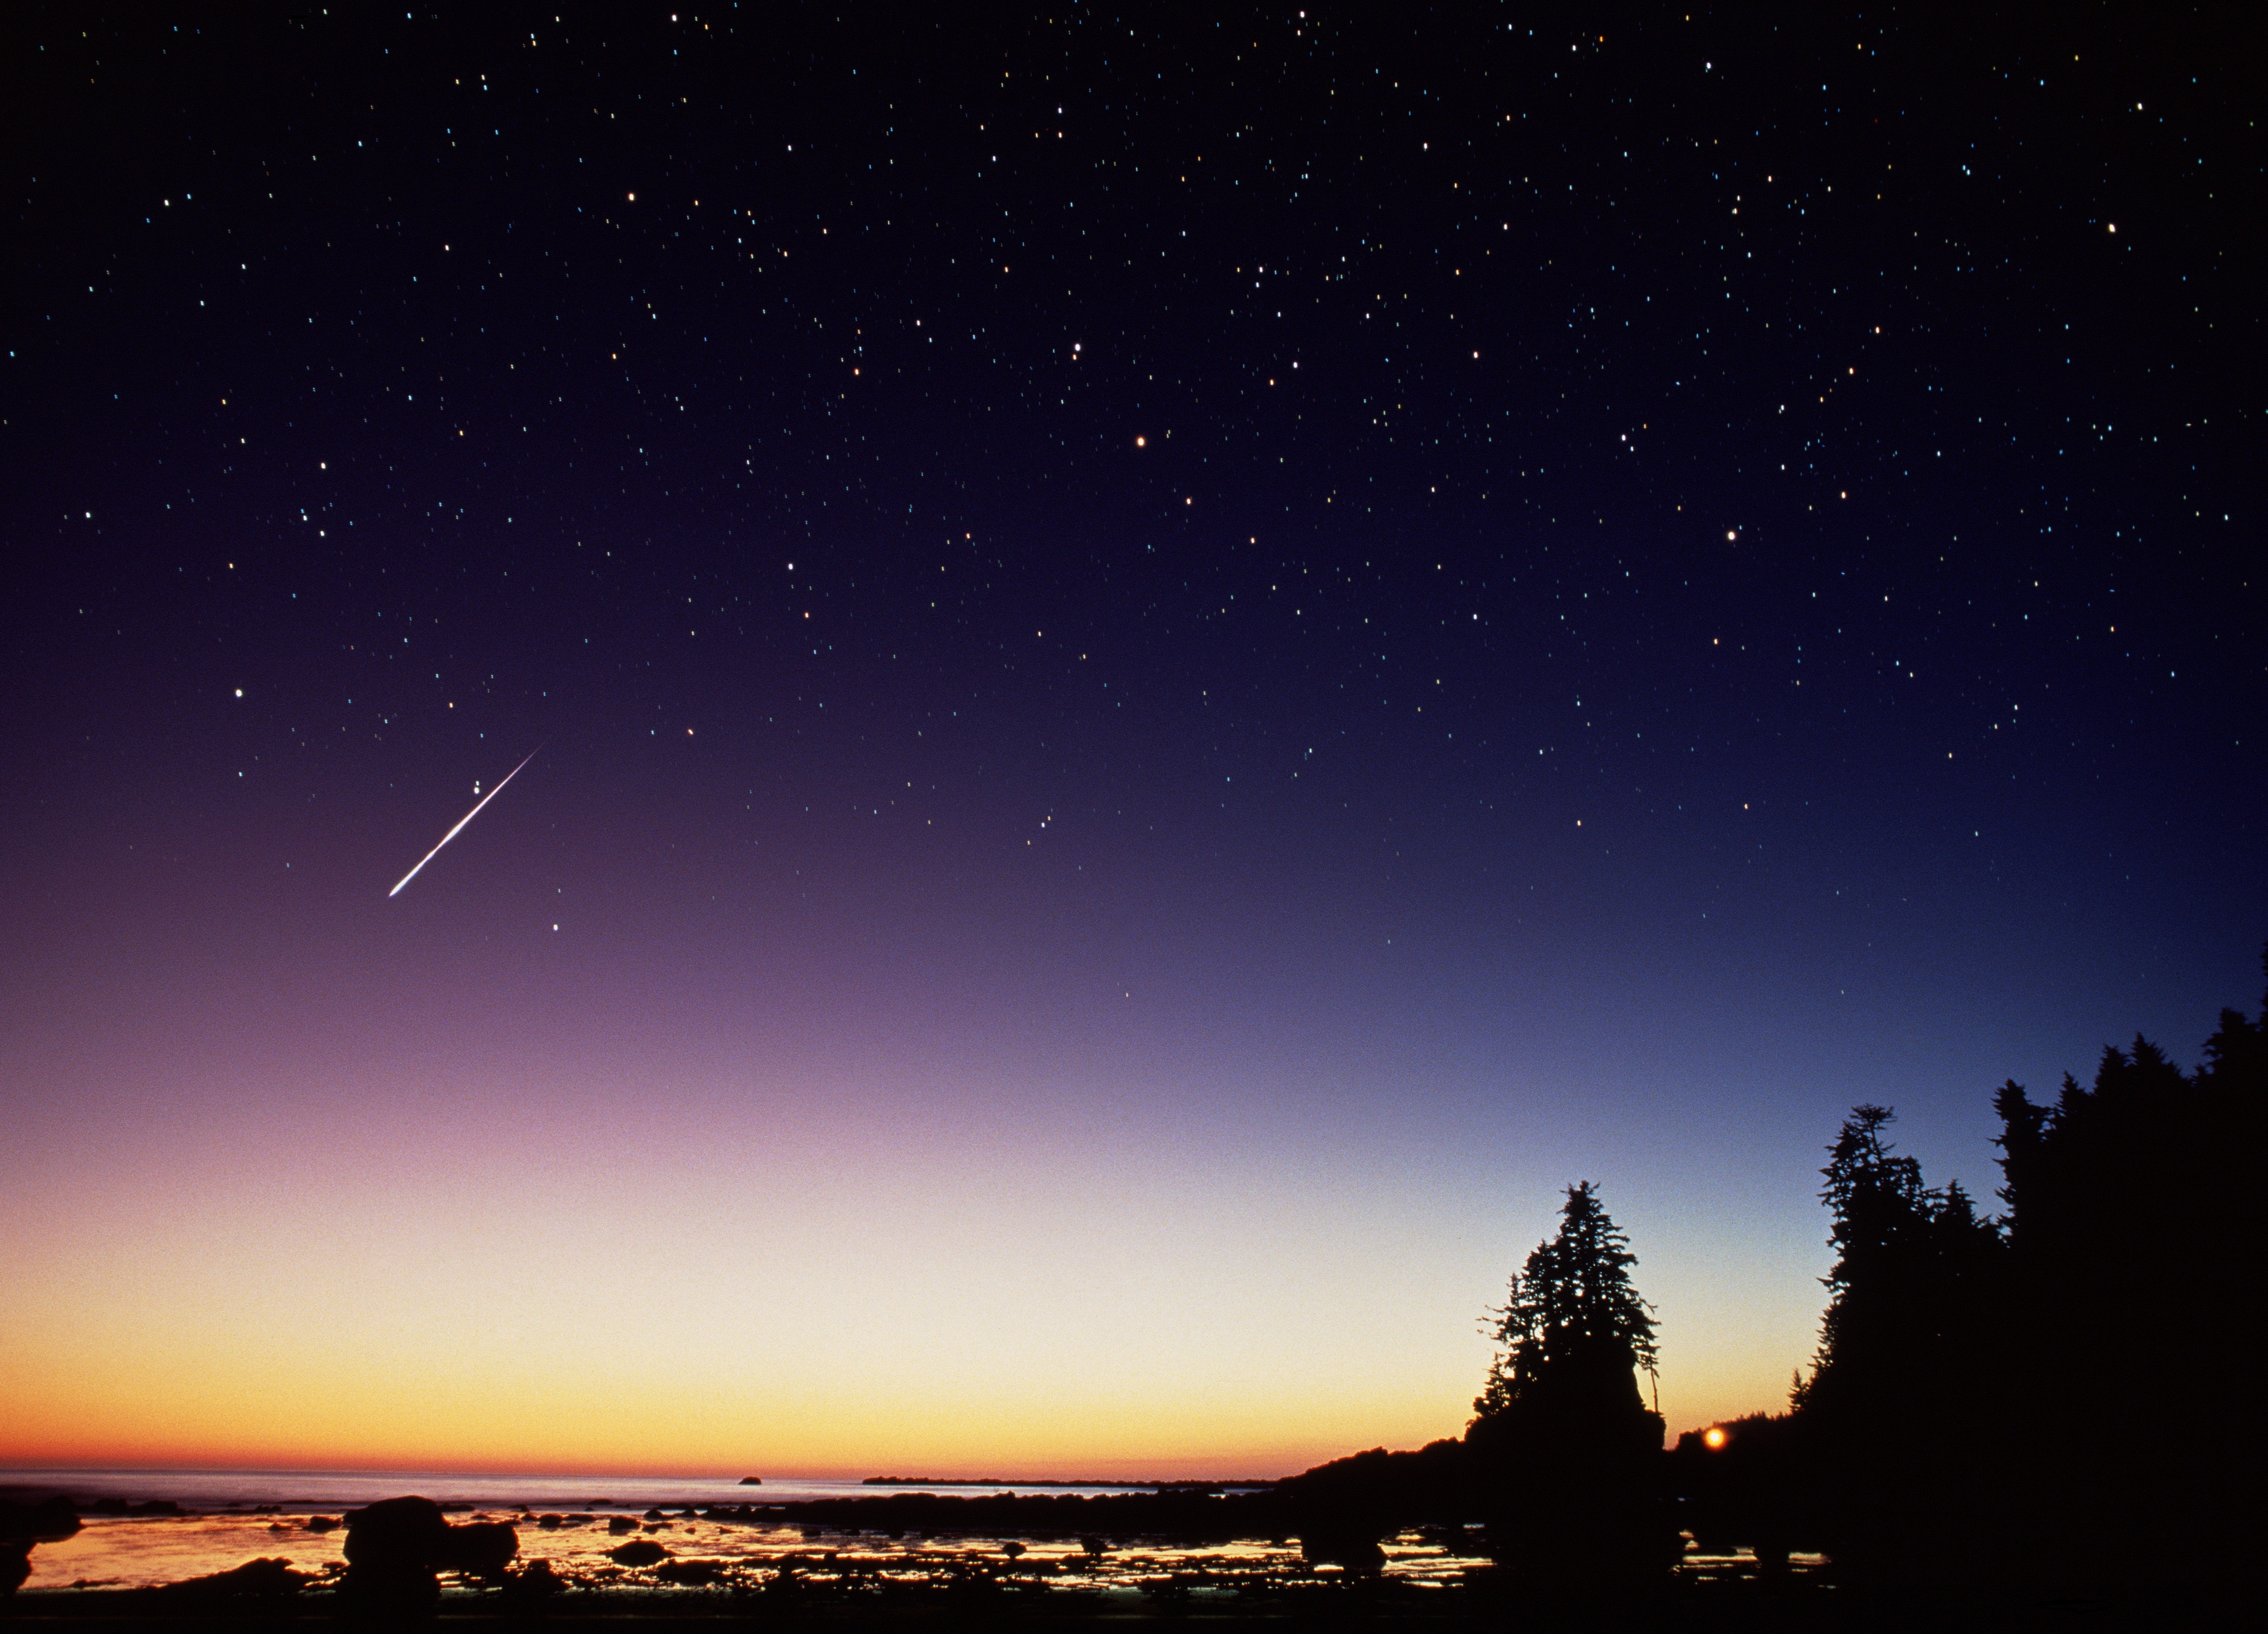 The Perseid meteor shower peaks this weekend. Here's how to catch the spectacular show.